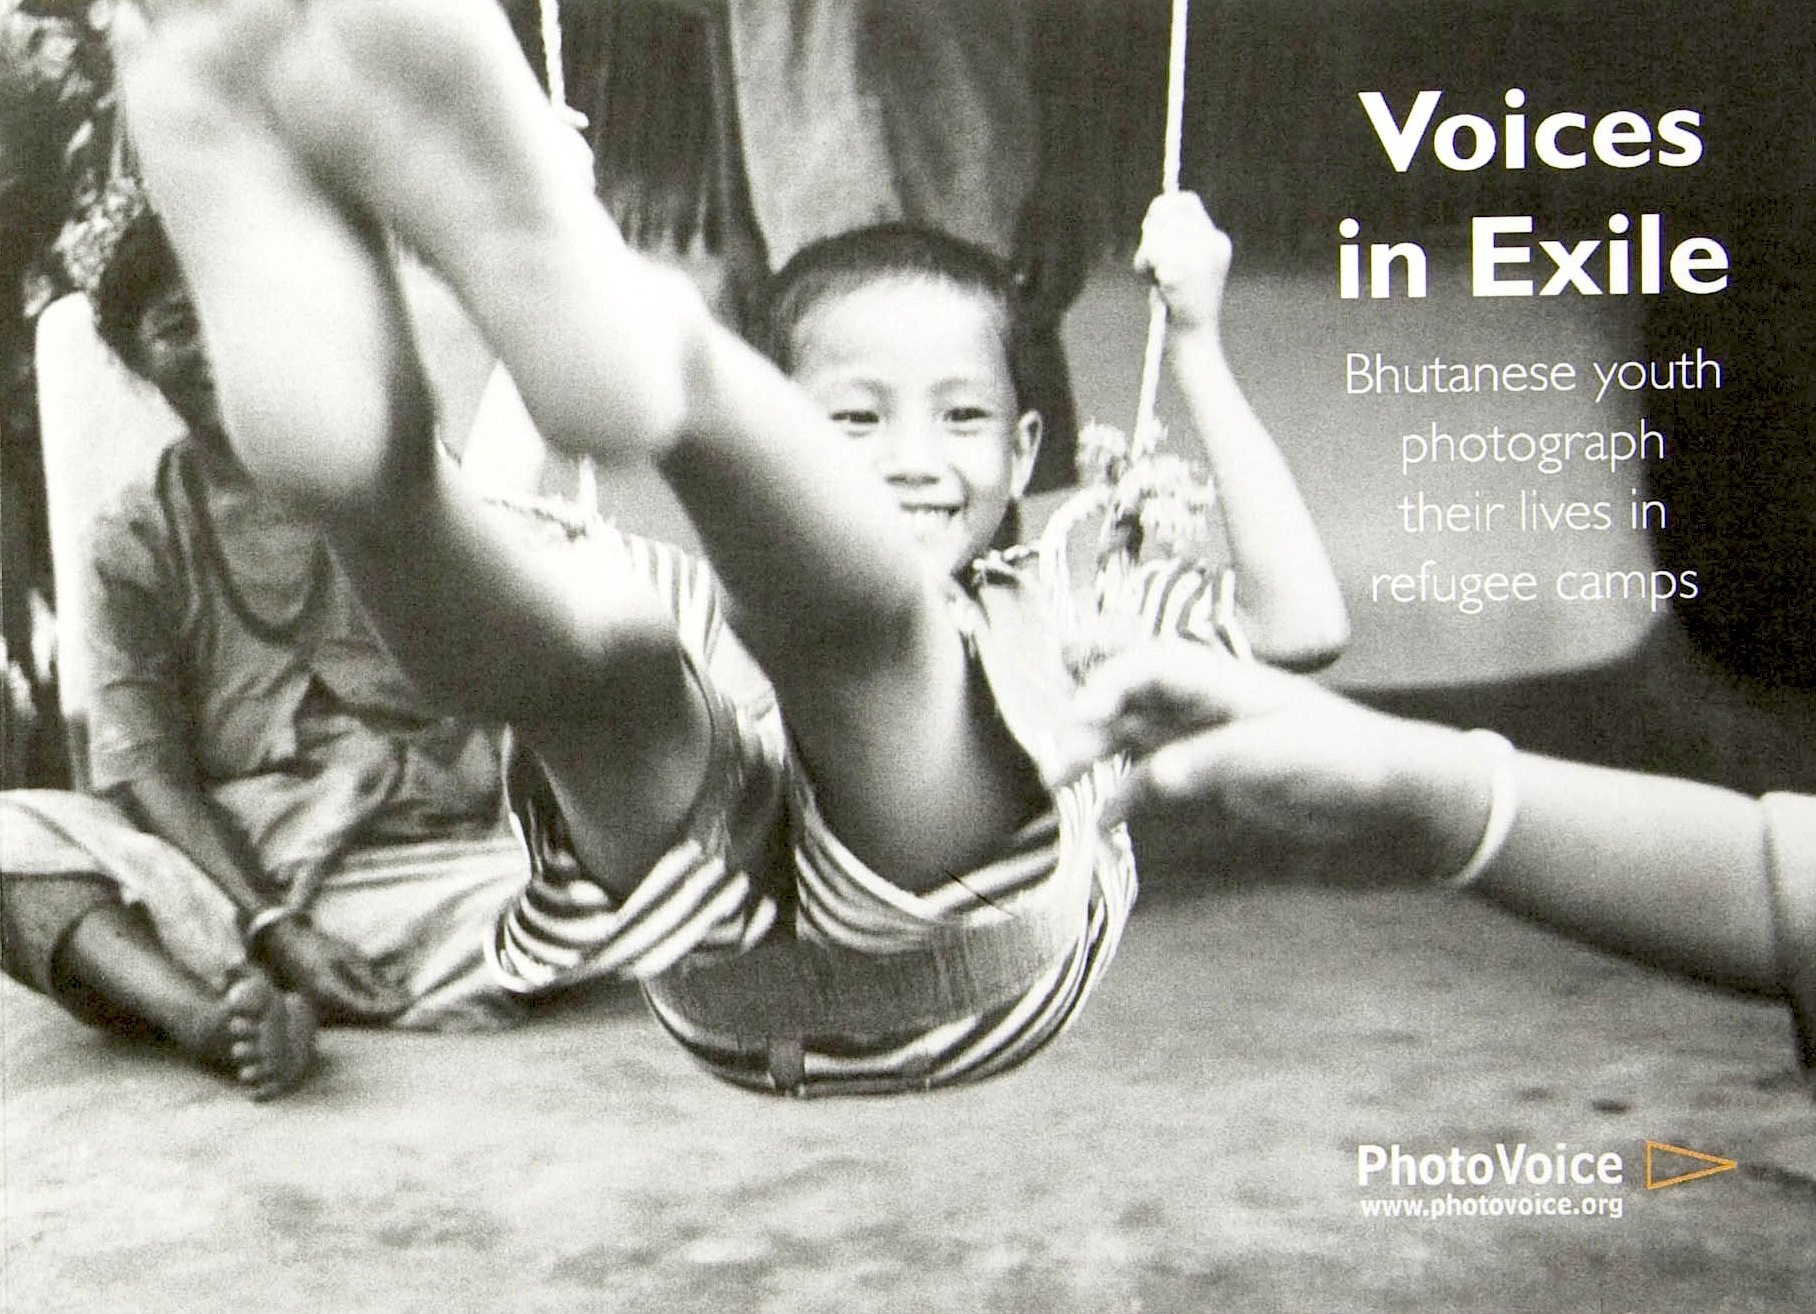 Voices in Exile, Photovoice, 2007